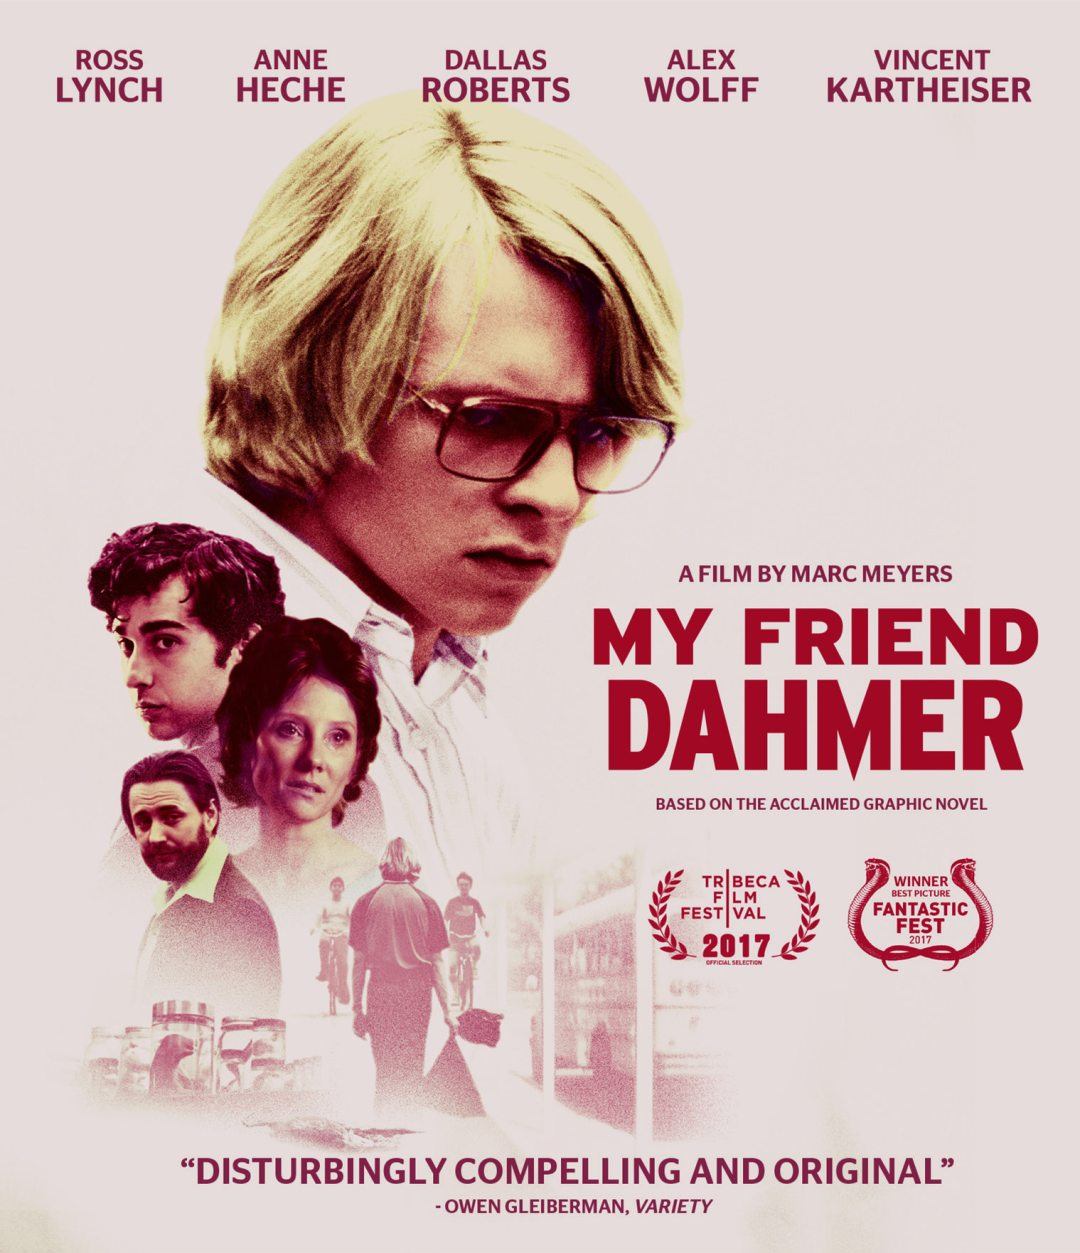 'My Friend Dahmer' Coming to DVD and Blu-ray on April 10th